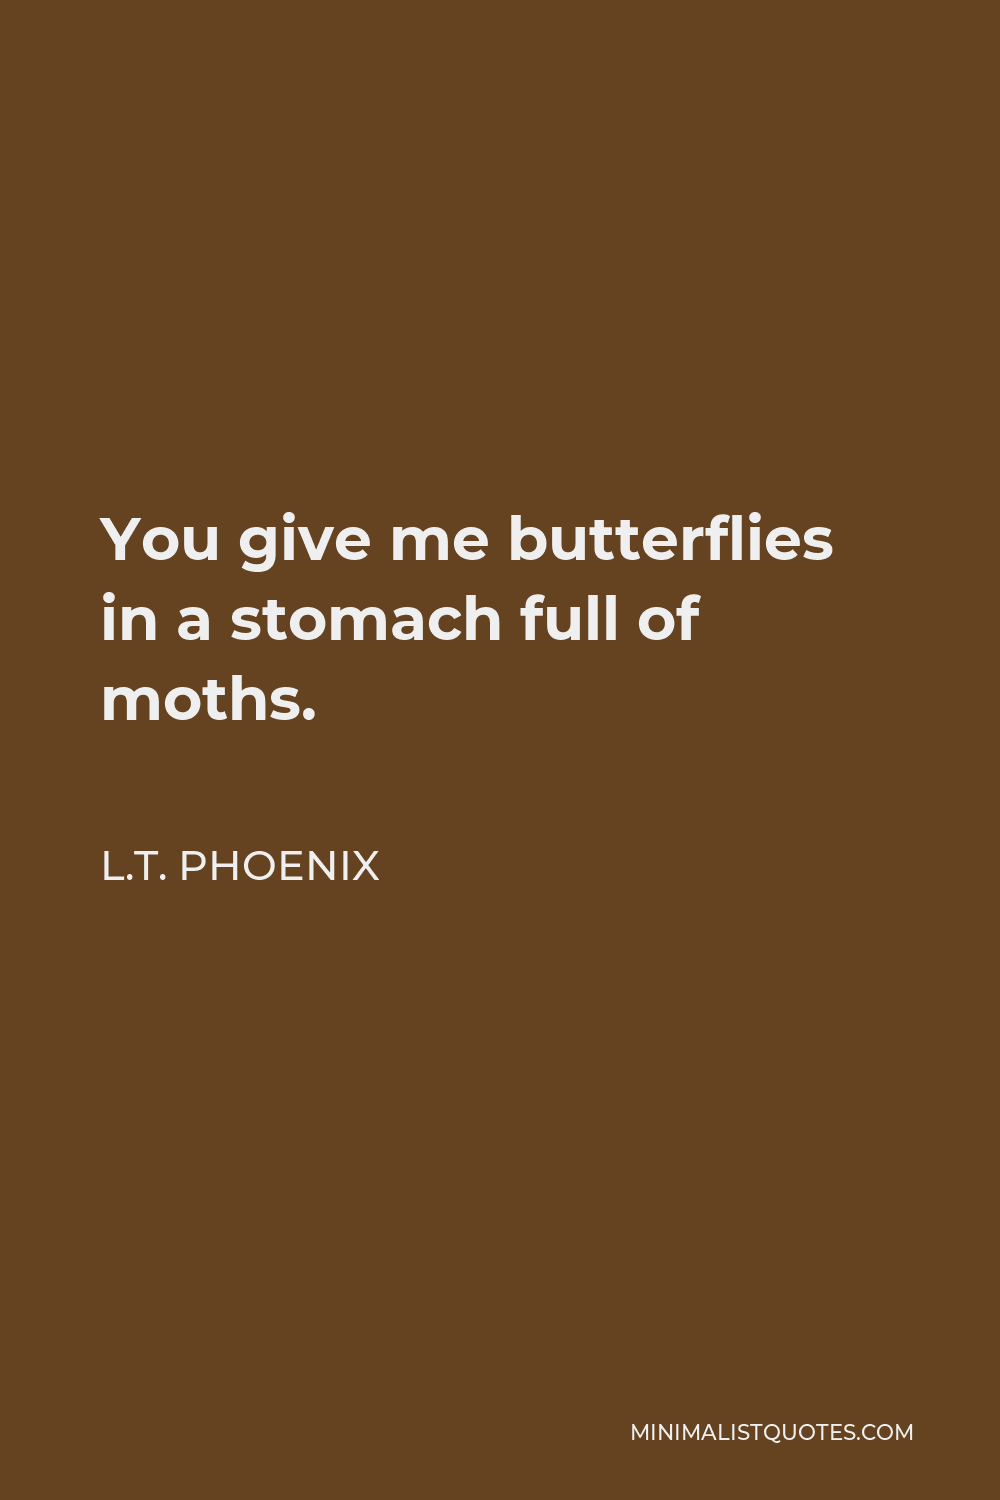 L.T. Phoenix Quote - You give me butterflies in a stomach full of moths.